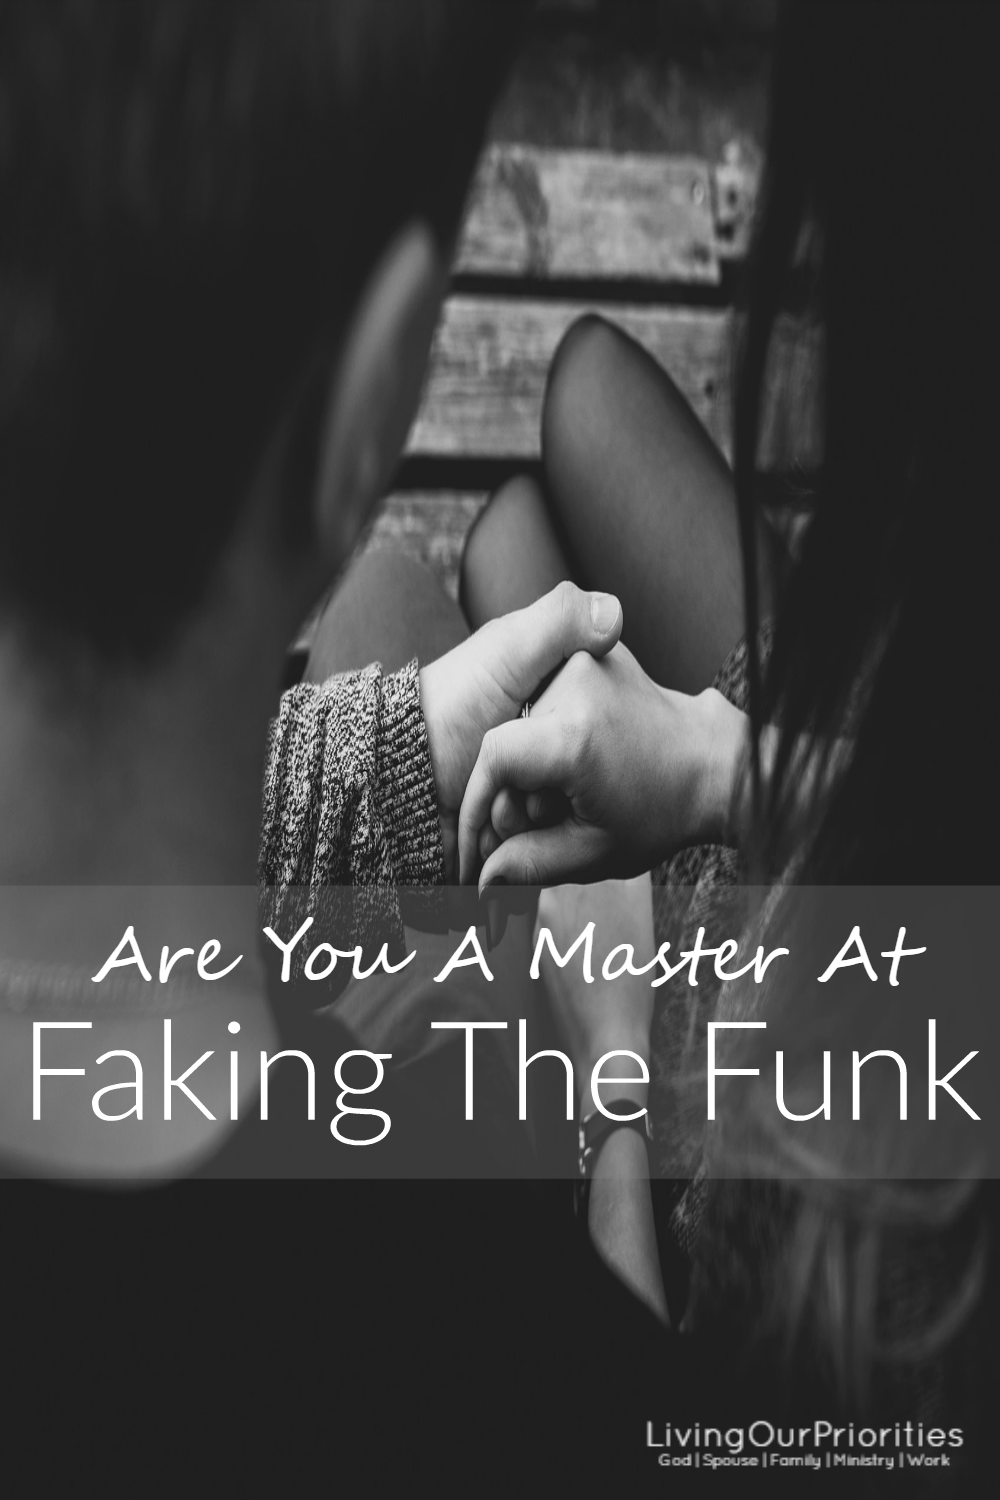 We all do it…faking the funk; at work, around friends, around family even at church. We all put on a front that everything is ok when, in reality, it's not! Can others tell, is this right or wrong? Find out now!